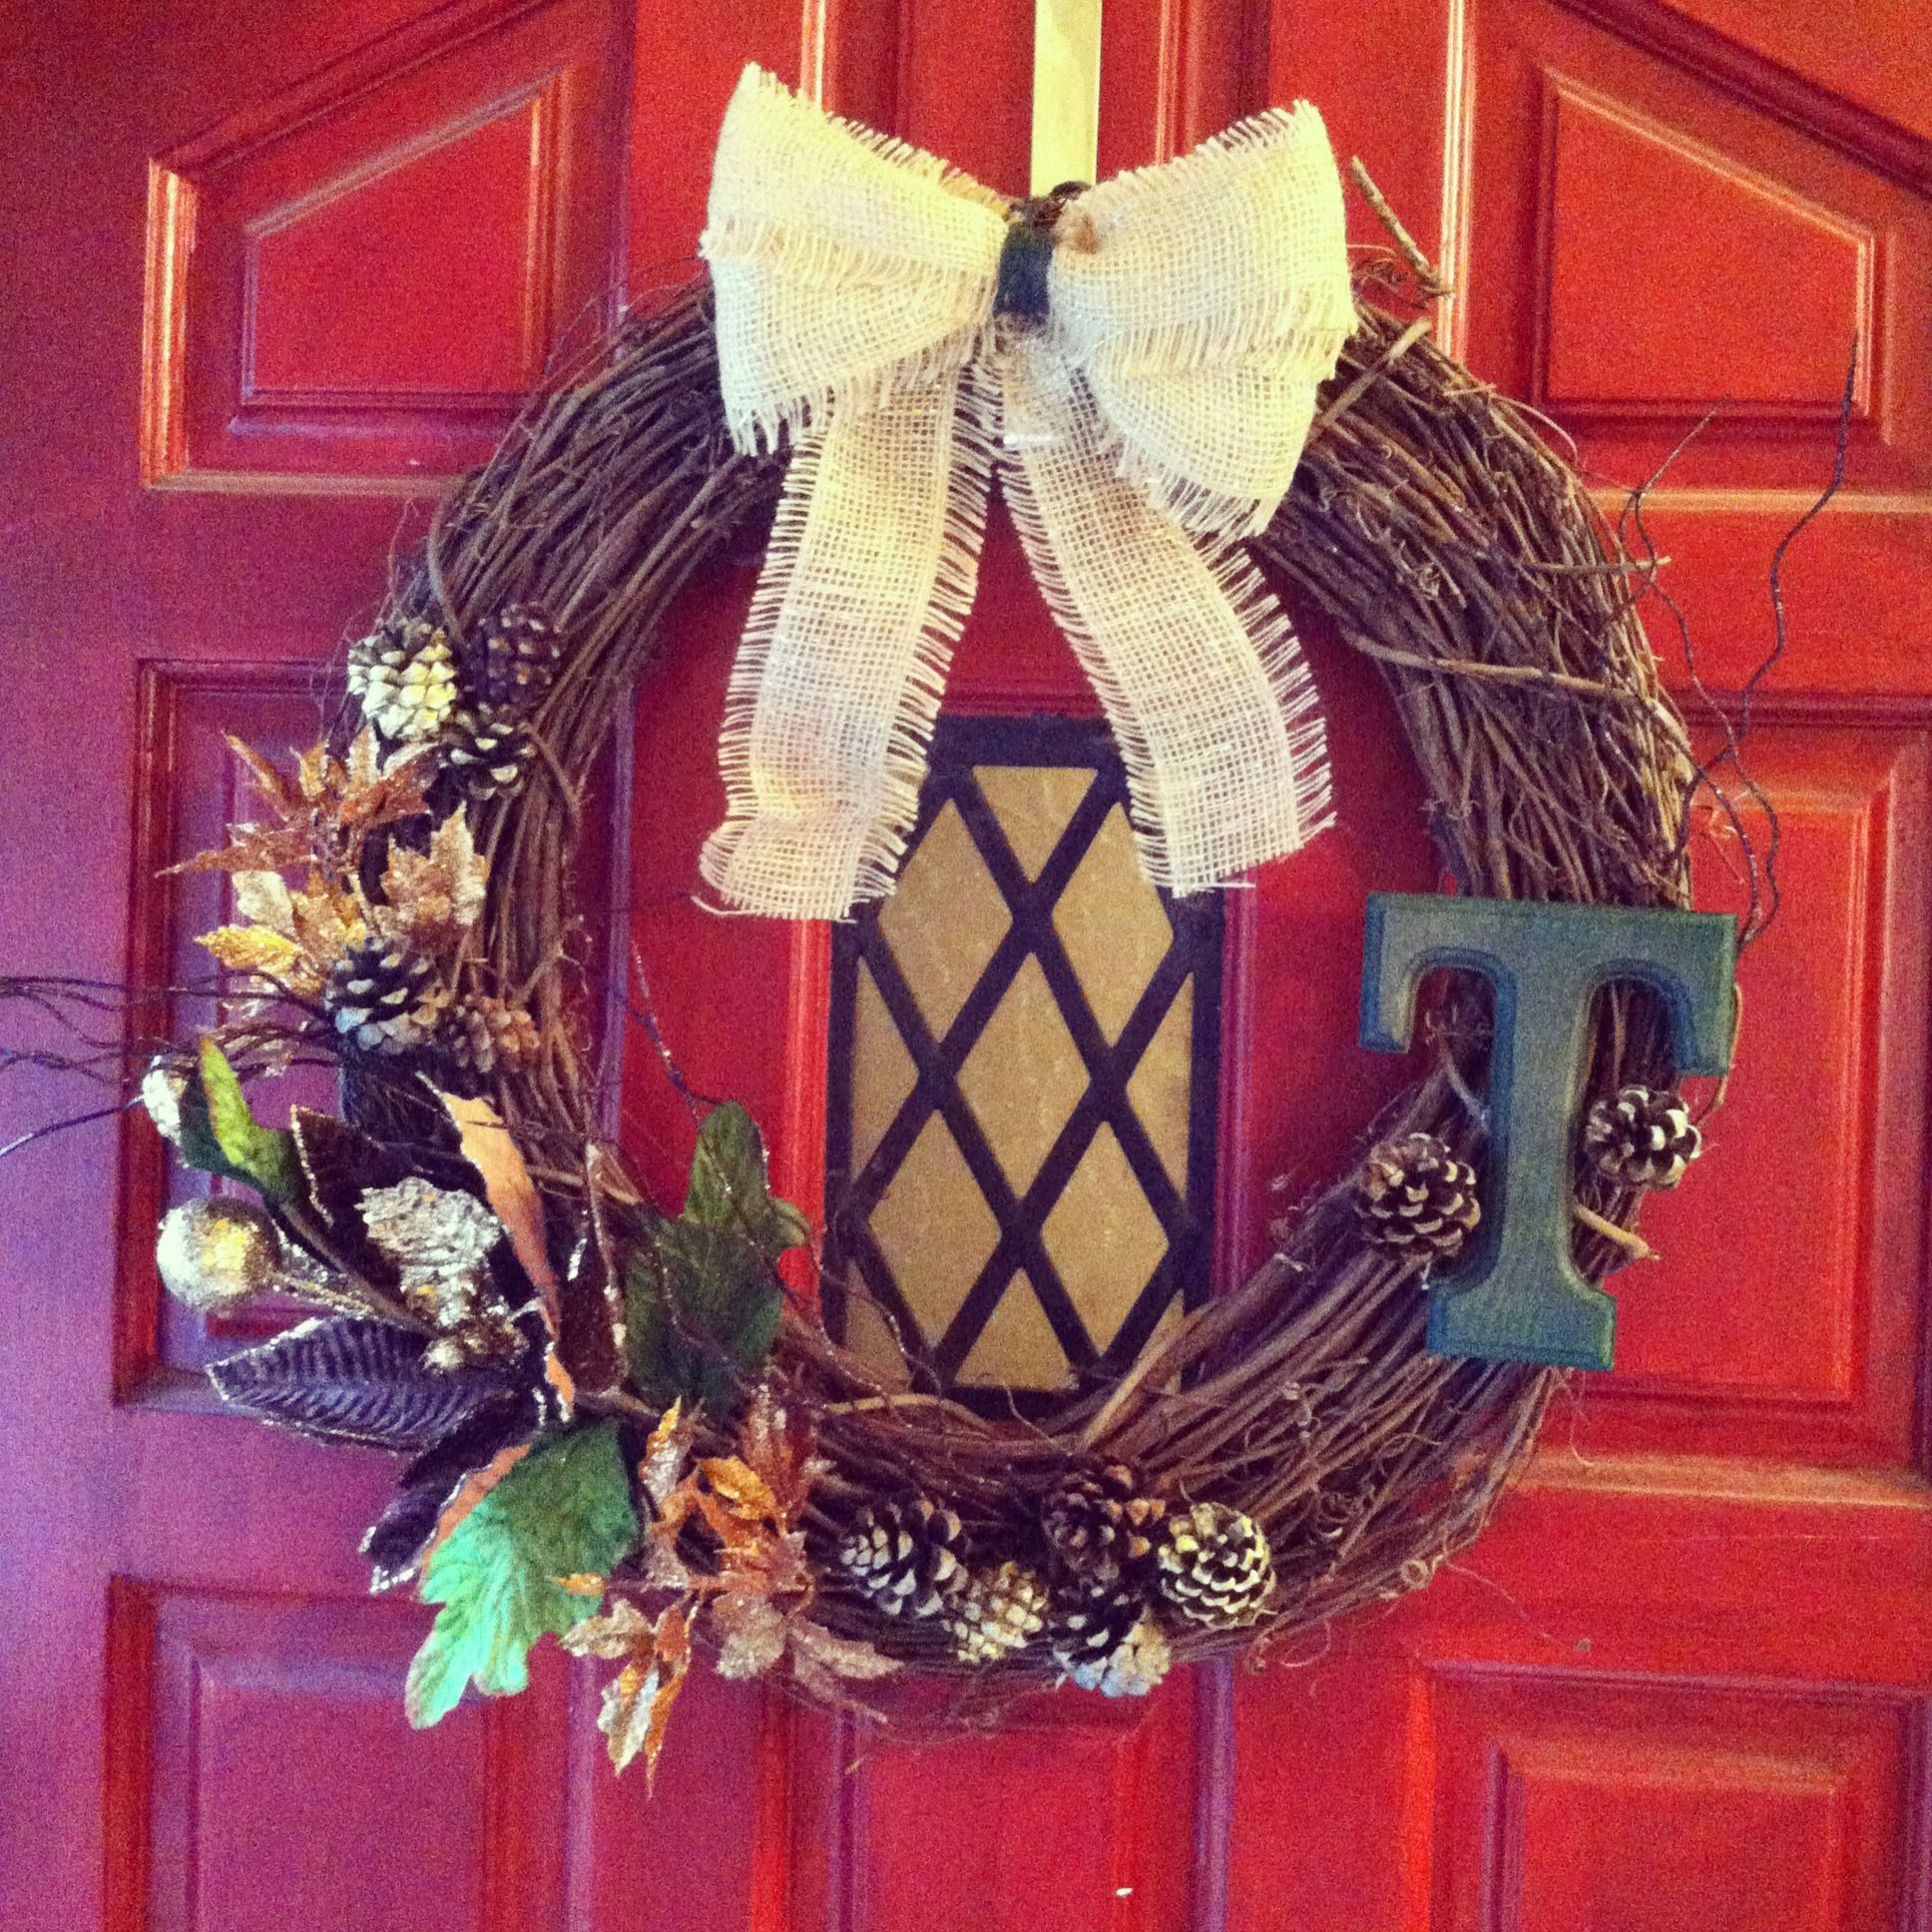 DIY wreath. Super and easy. .99 cent buckets from Michaels have everything you need! The monogram gives it that extra something special! #holidayspirit #thanksgiving #thankful #crafty #diywreath # monogrammedwreath